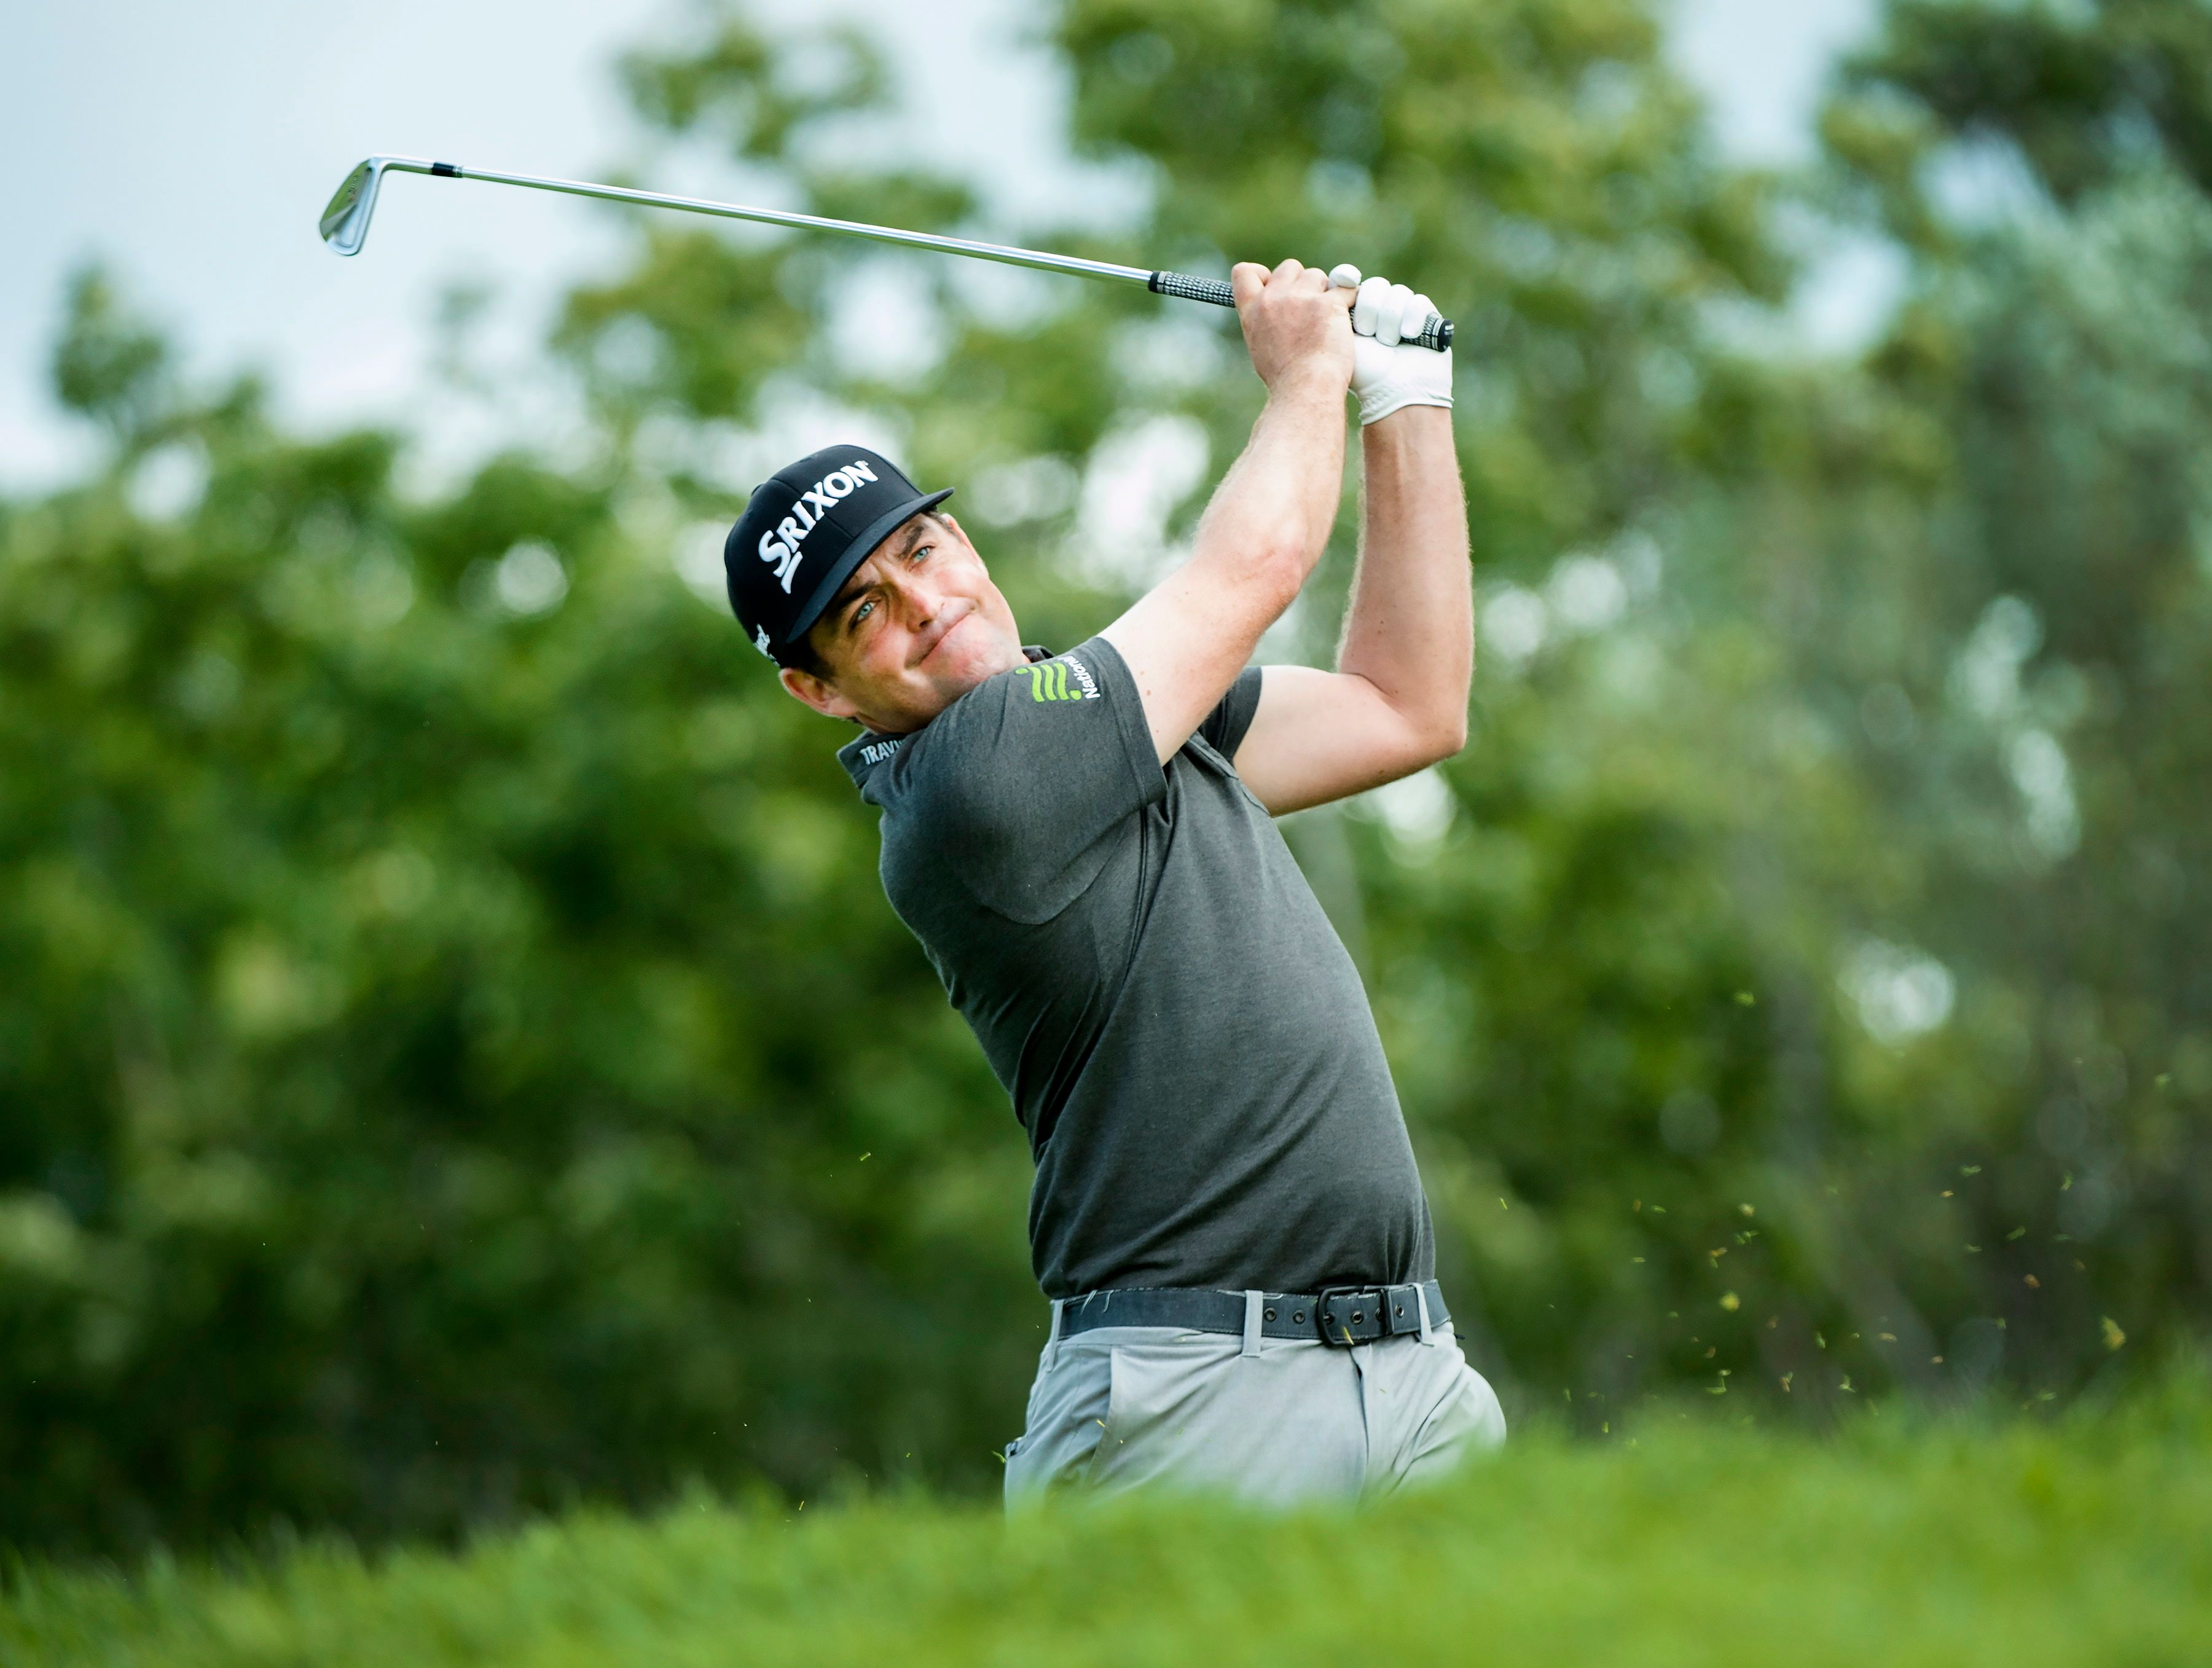 Top-ranked Dustin Johnson tied for Canadian Open lead